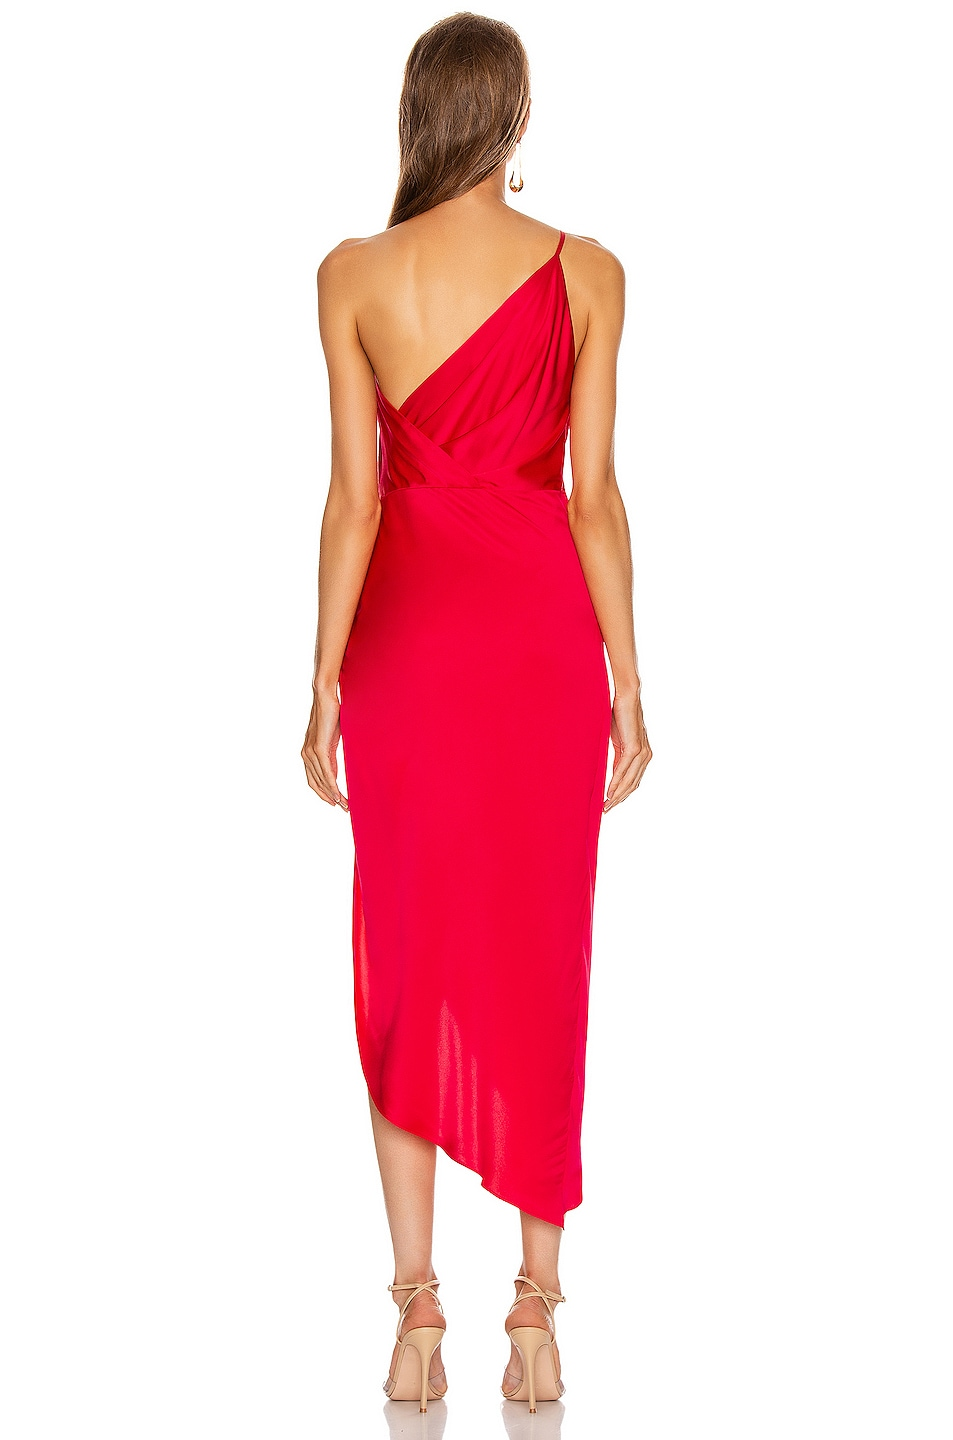 Image 4 of Michelle Mason for FWRD Twist Knot Midi Dress in Peony